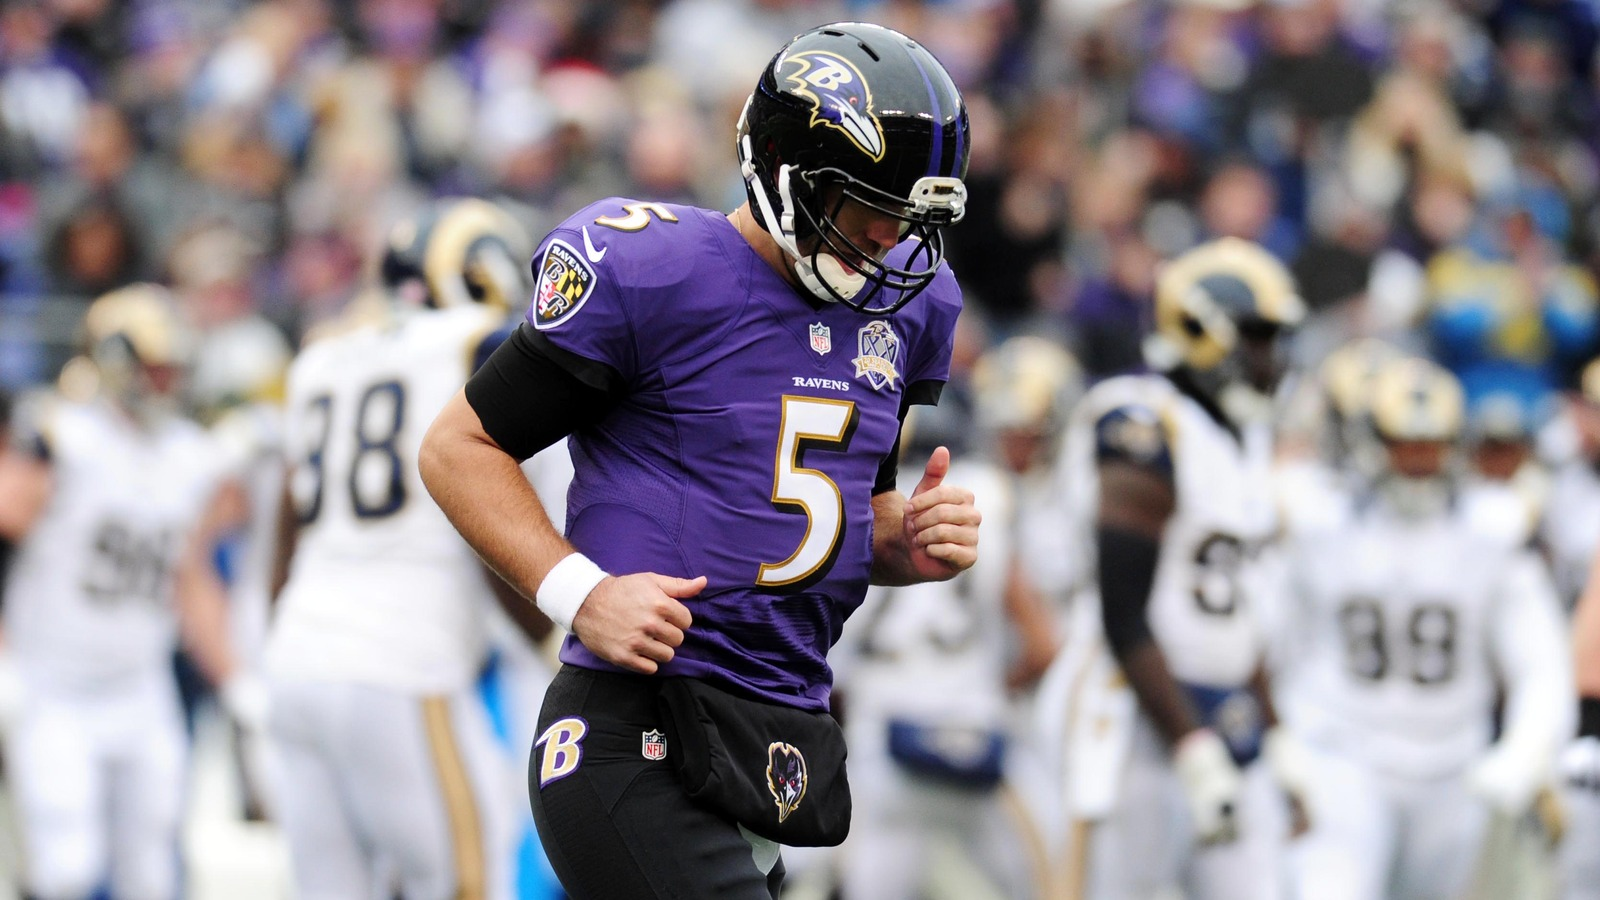 Ravens need to mend in offseason, then add to talent pool